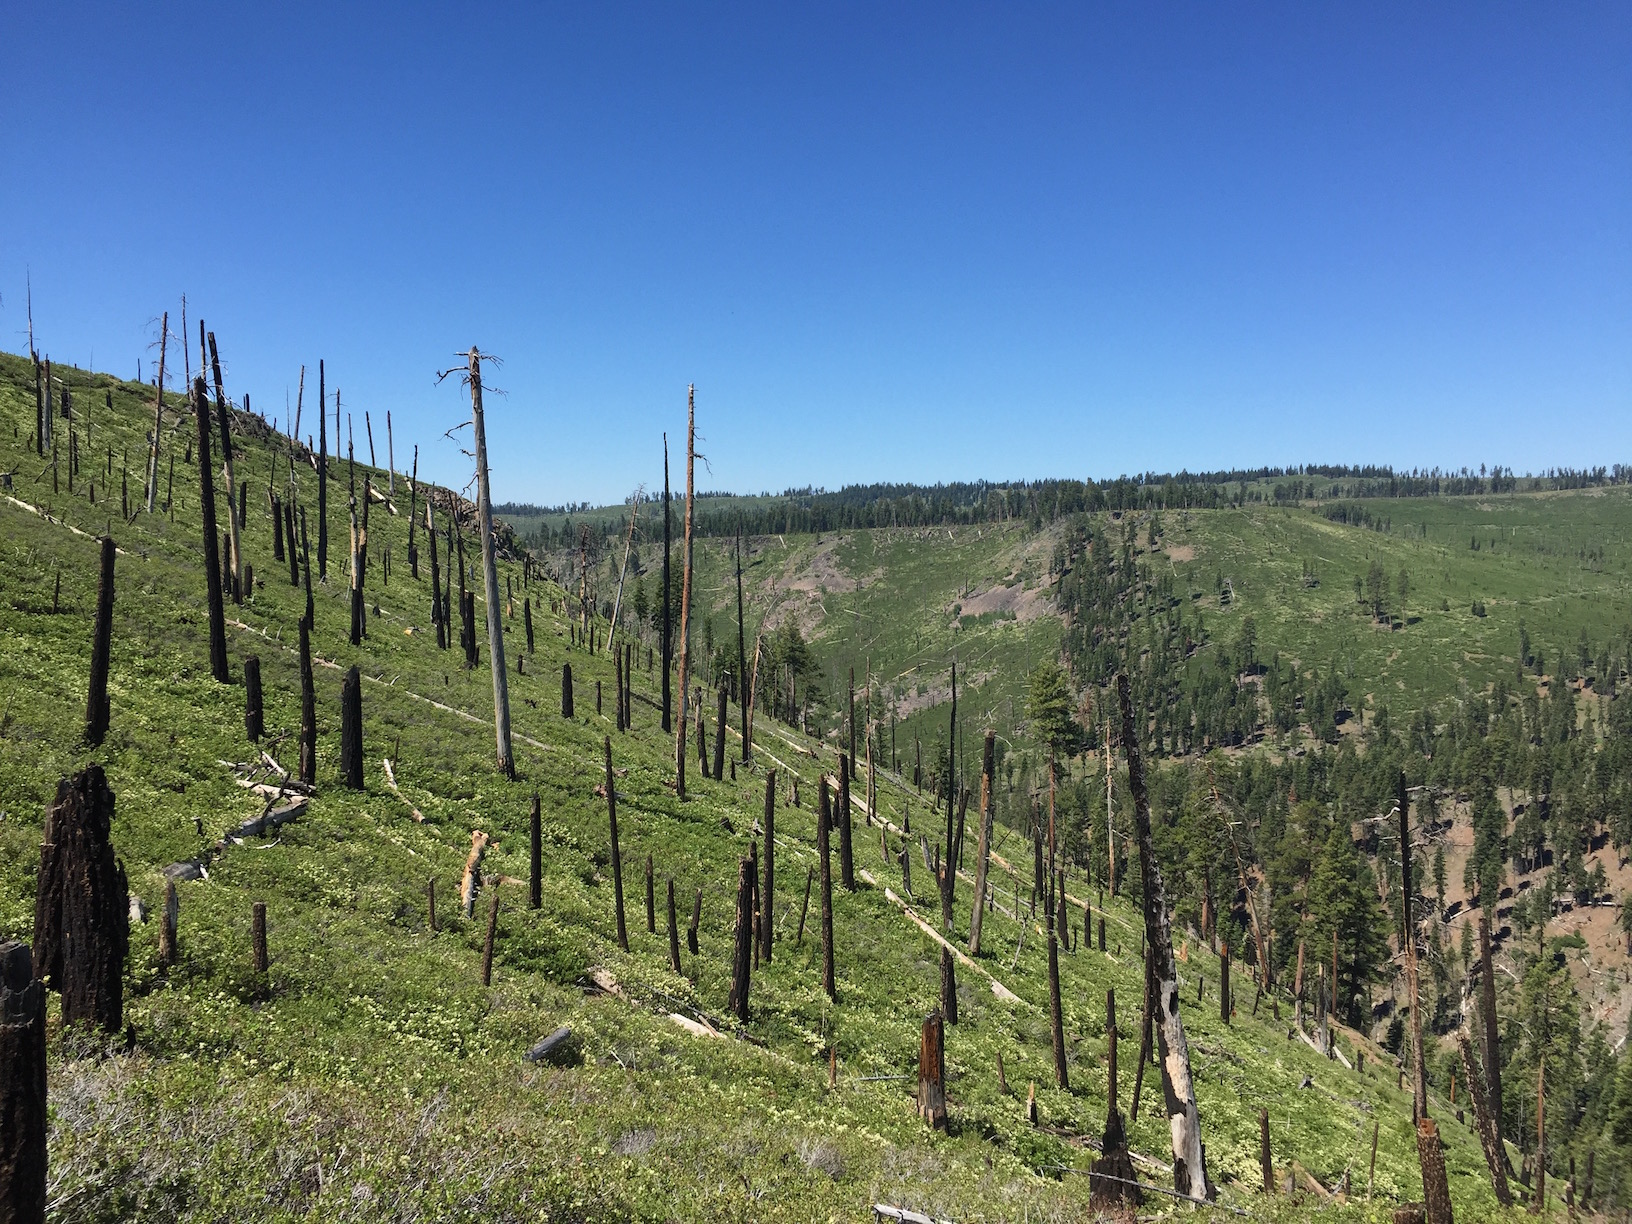 This post-fire landscape in the Warner Mountains remains deforested 16 years after the Blue Fire. (Jesse Miller/UC Davis)